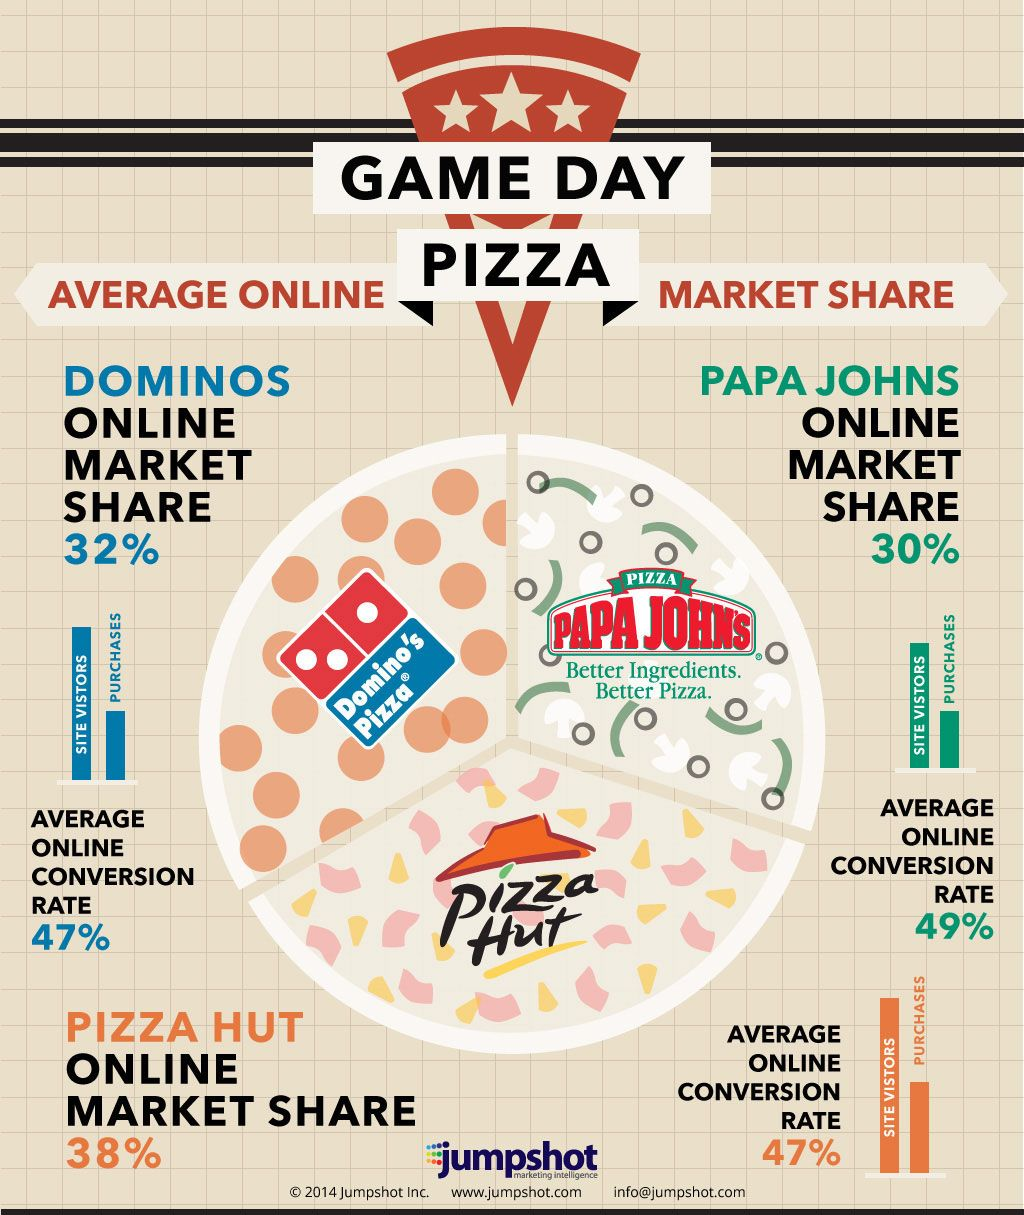 Amongst the largest #Pizza retailers, find out who came out the winner on game day Sunday by viewing the full graphic on our website. By analyzing the break down in online traffic and orders, Jumpshot has produced insightful intelligence from different NFL Sundays. #infographic j.mp/gamedaypizza